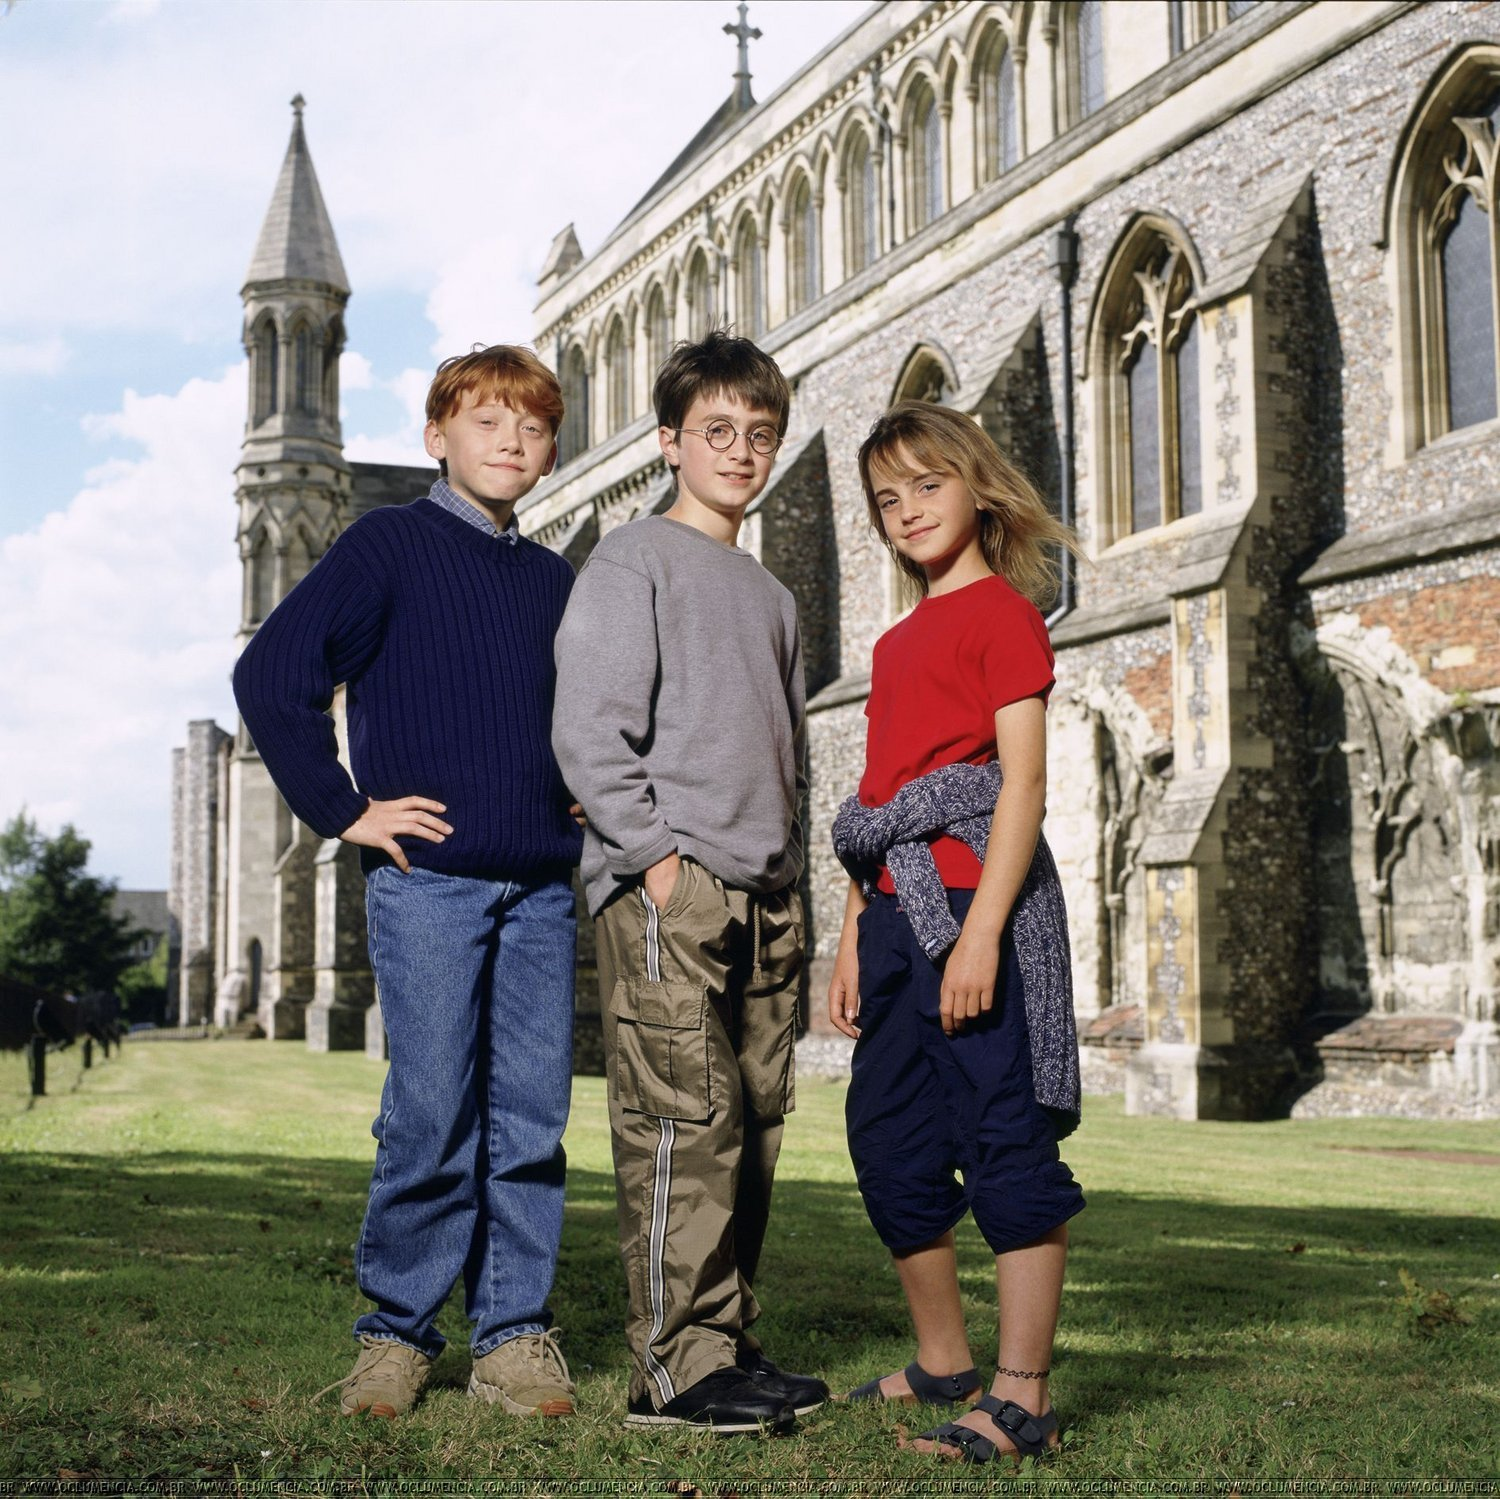 EXCLUSIVE: New images of the First Harry Potter's Photoshoot